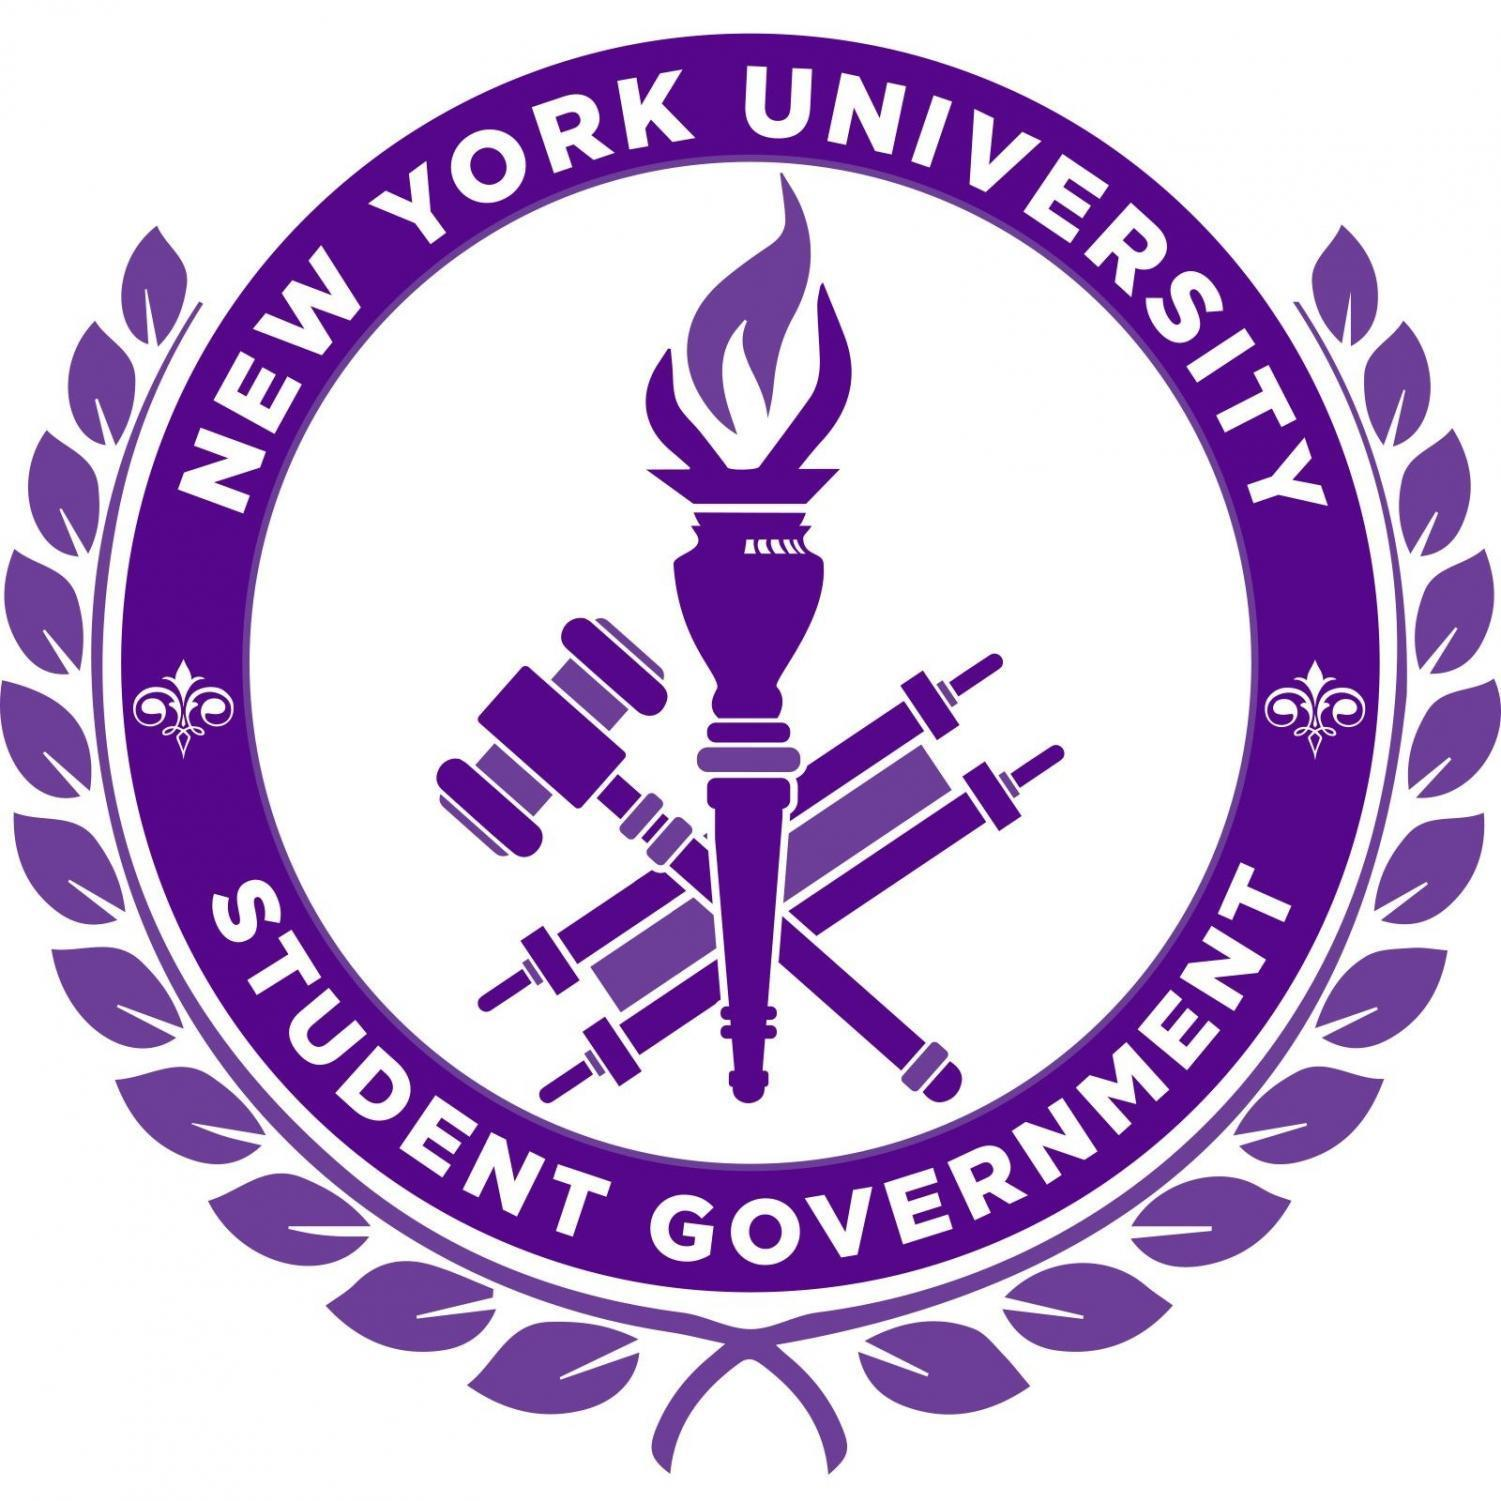 President Andrew Hamilton announced to the University Senate that NYU will accept Puerto Rican students affected by the hurricane next semester.